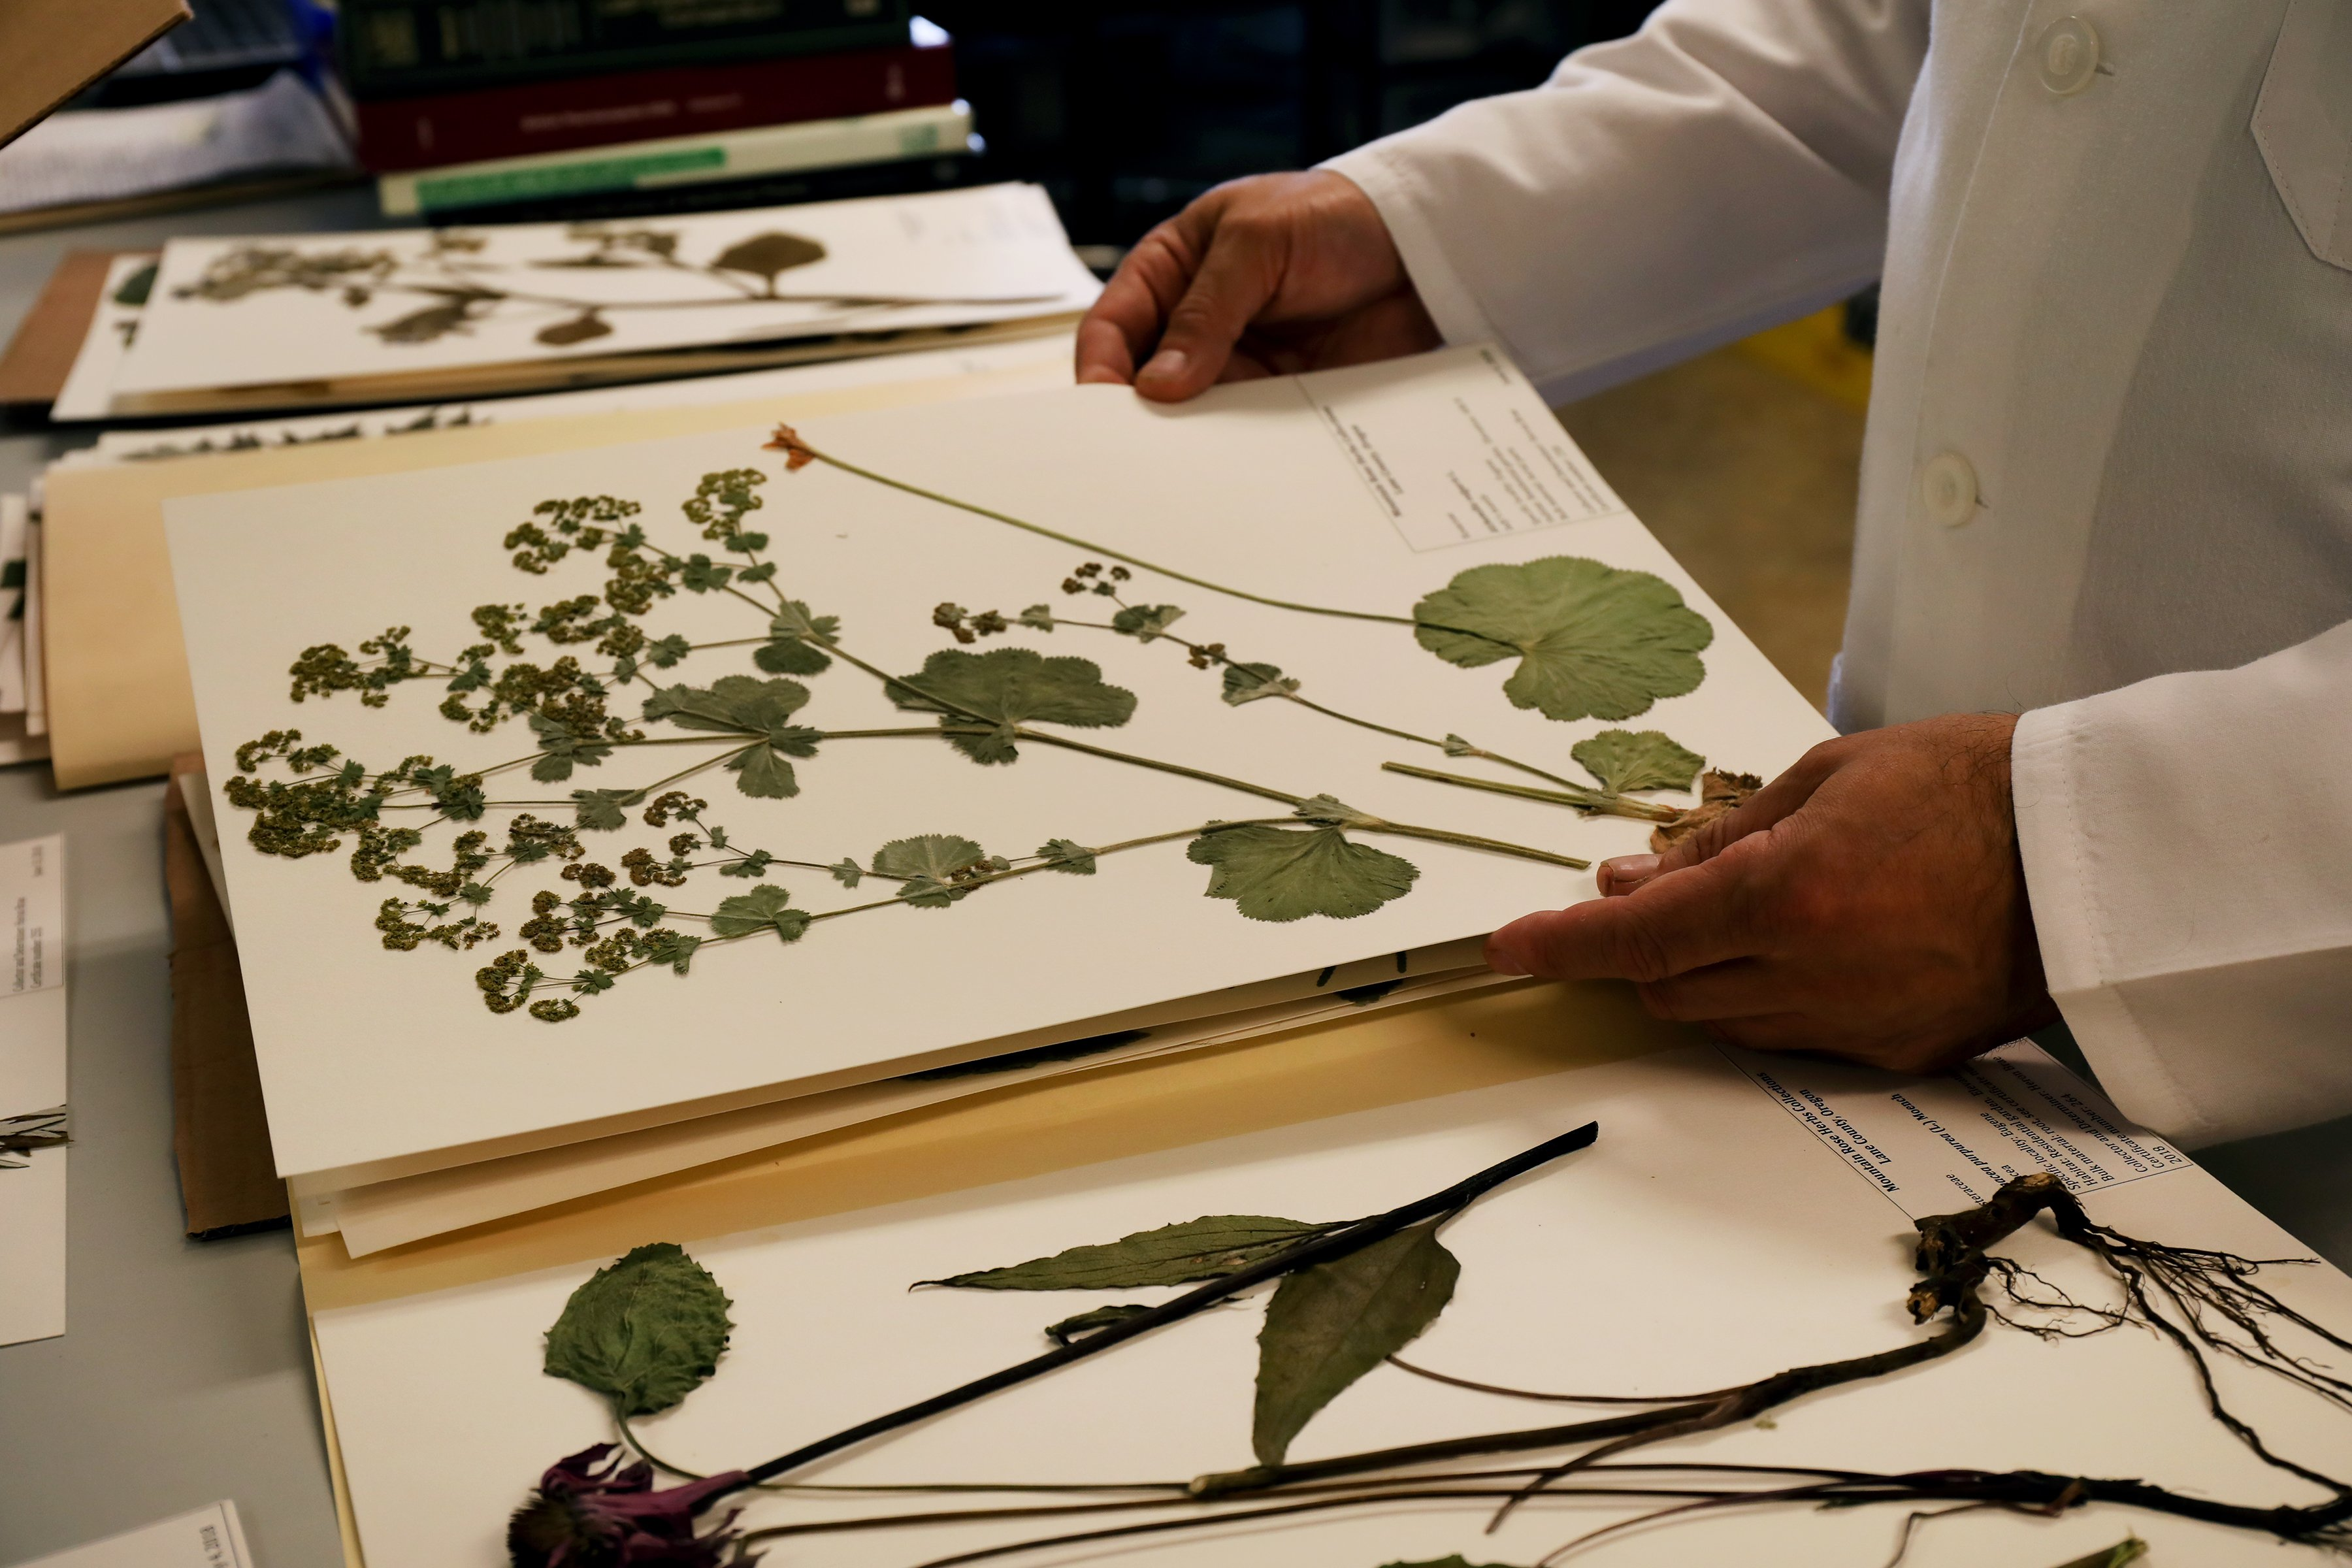 Botanical reference libraries are tools to help with identifying and confirming species of different botanicals.